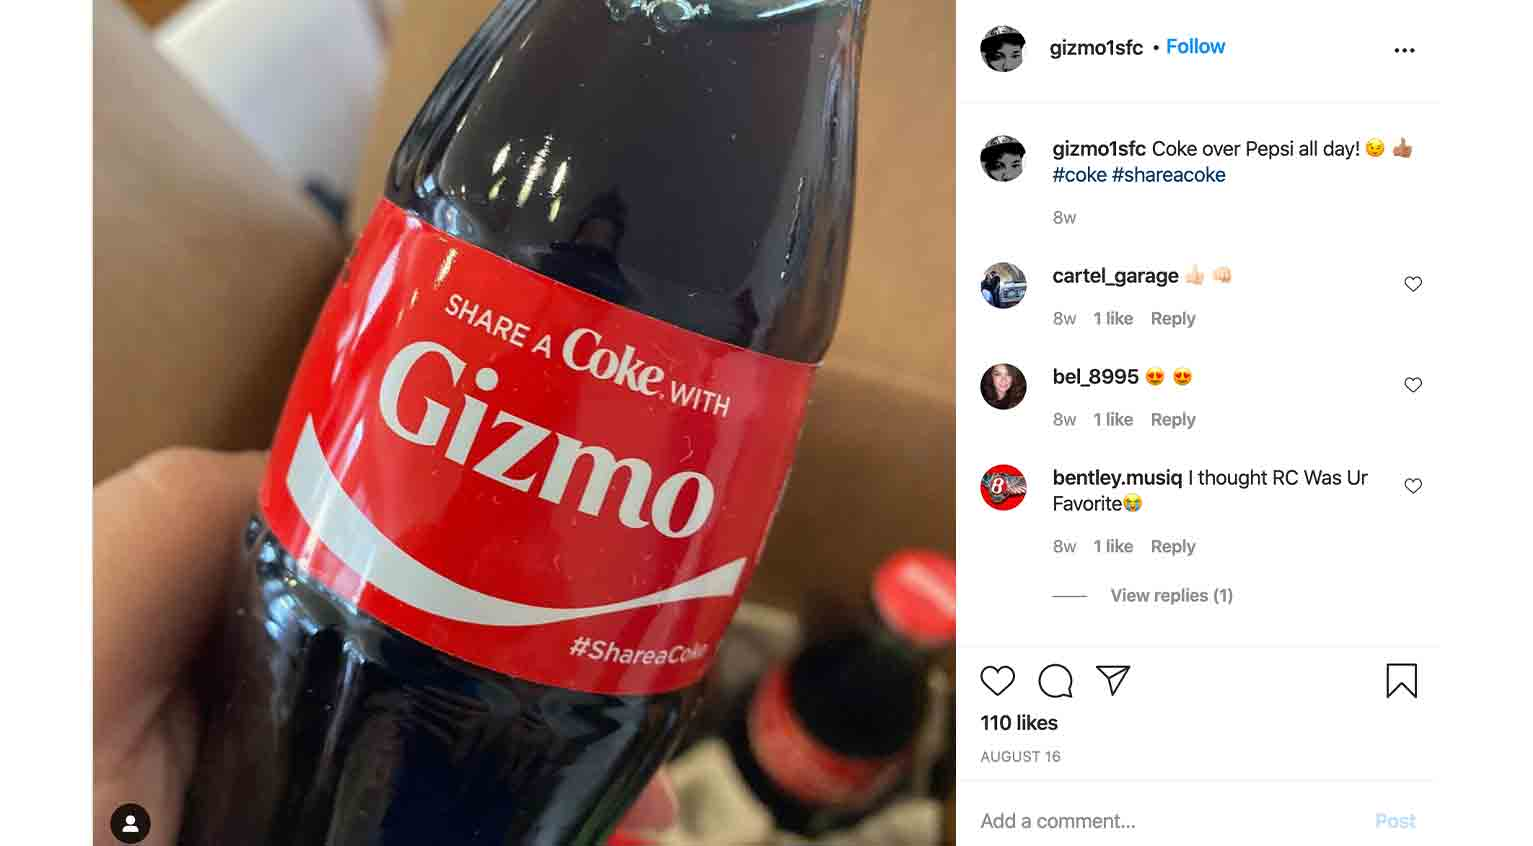 Coca-Cola's 'Share a Coke' campaign is one of the most phenomenally successful user-generated content campaigns to date.